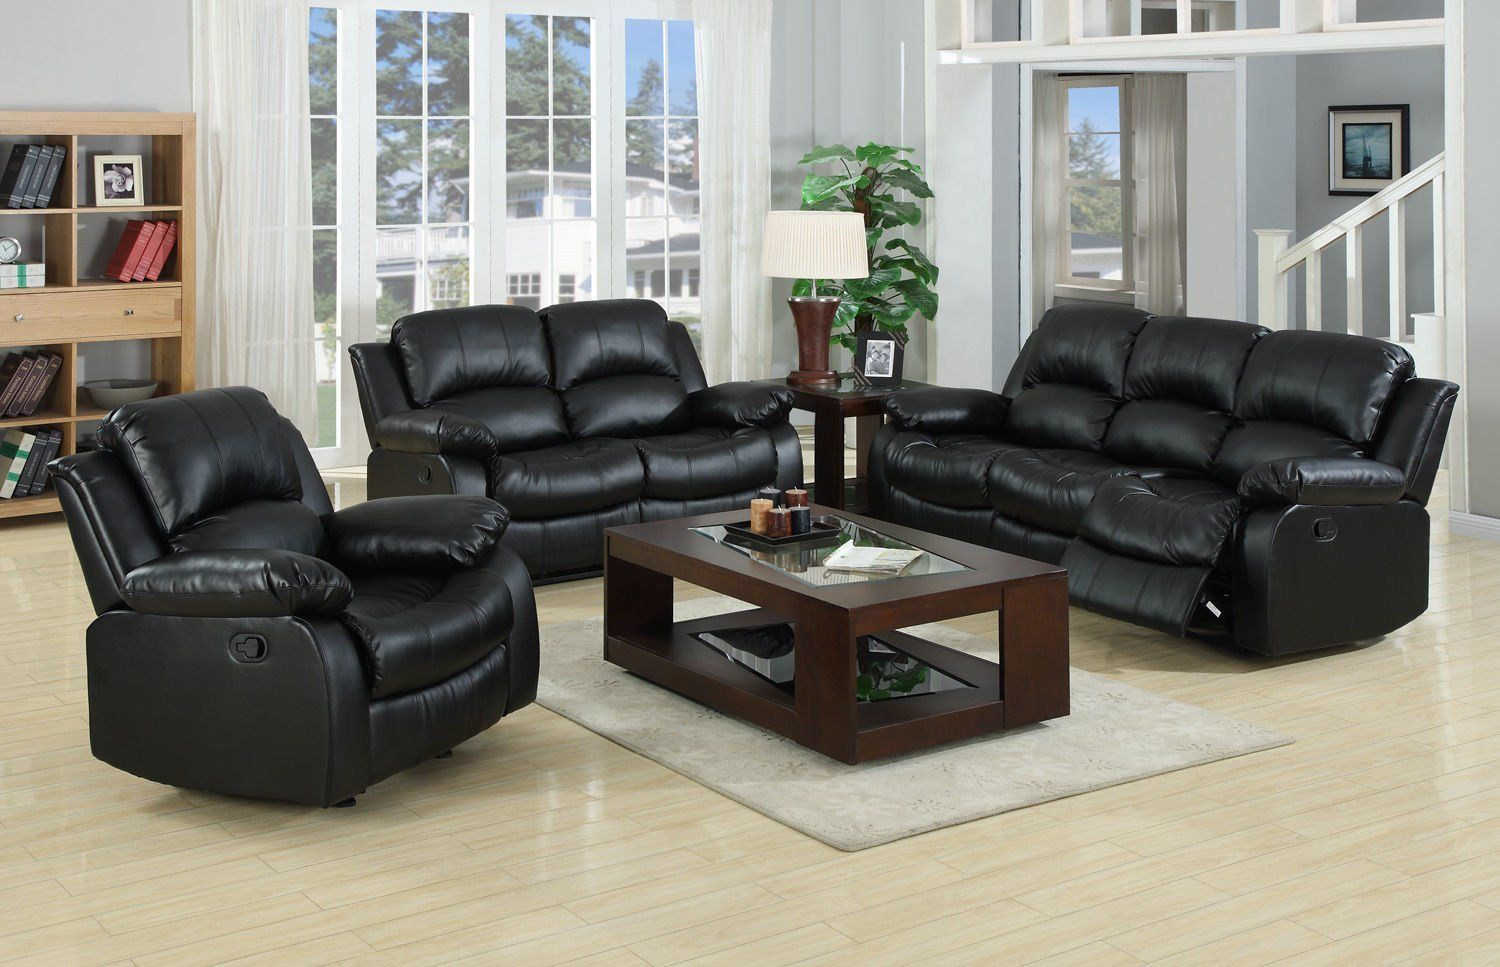 Groovy Valencia Black Recliner Leather Sofa Suite 3 2 Seater Brand Creativecarmelina Interior Chair Design Creativecarmelinacom